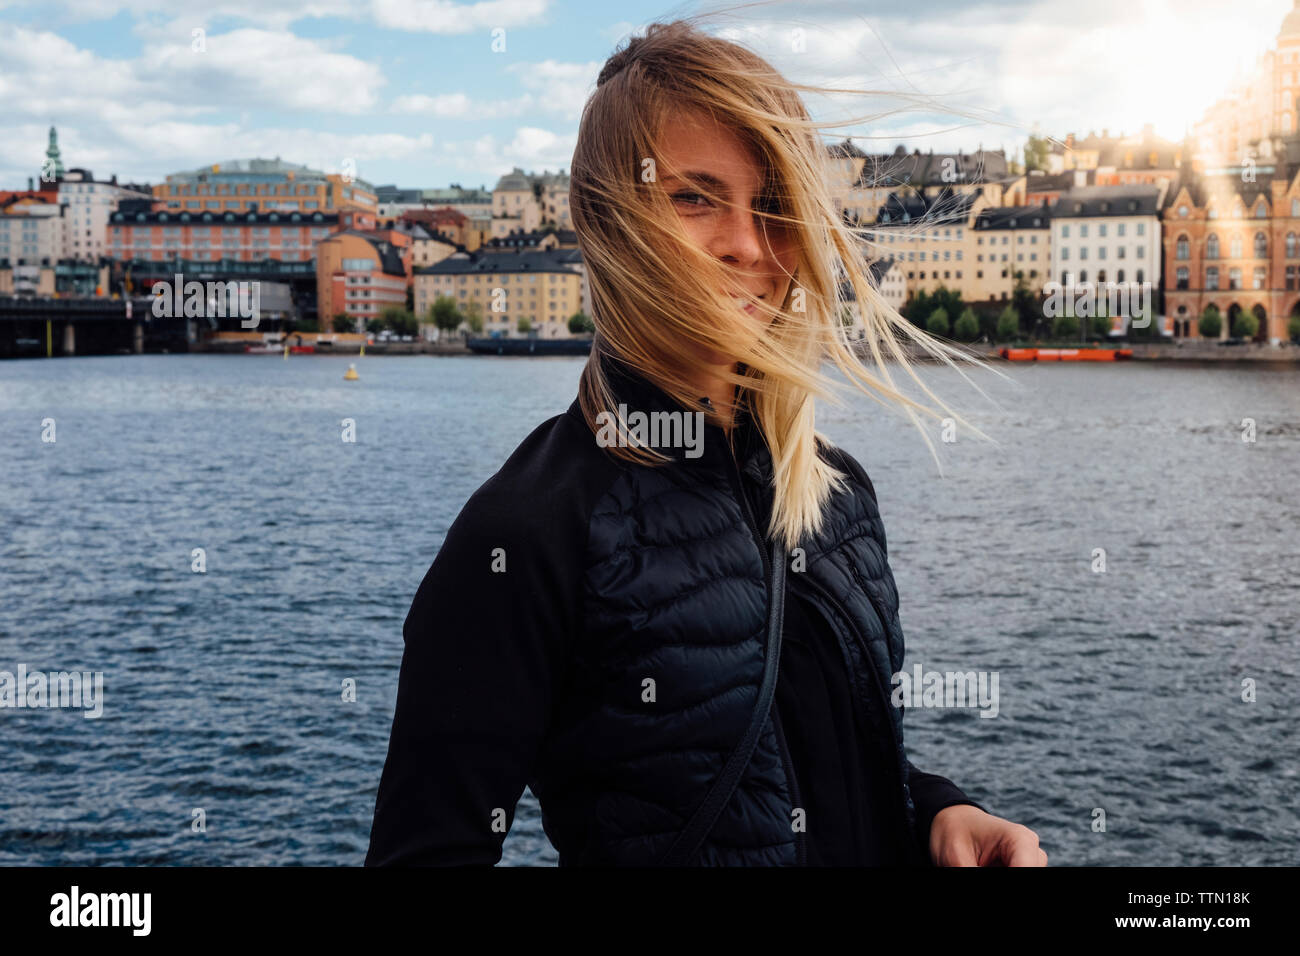 Portrait of smiling young woman with tousled hair standing against river in city - Stock Image